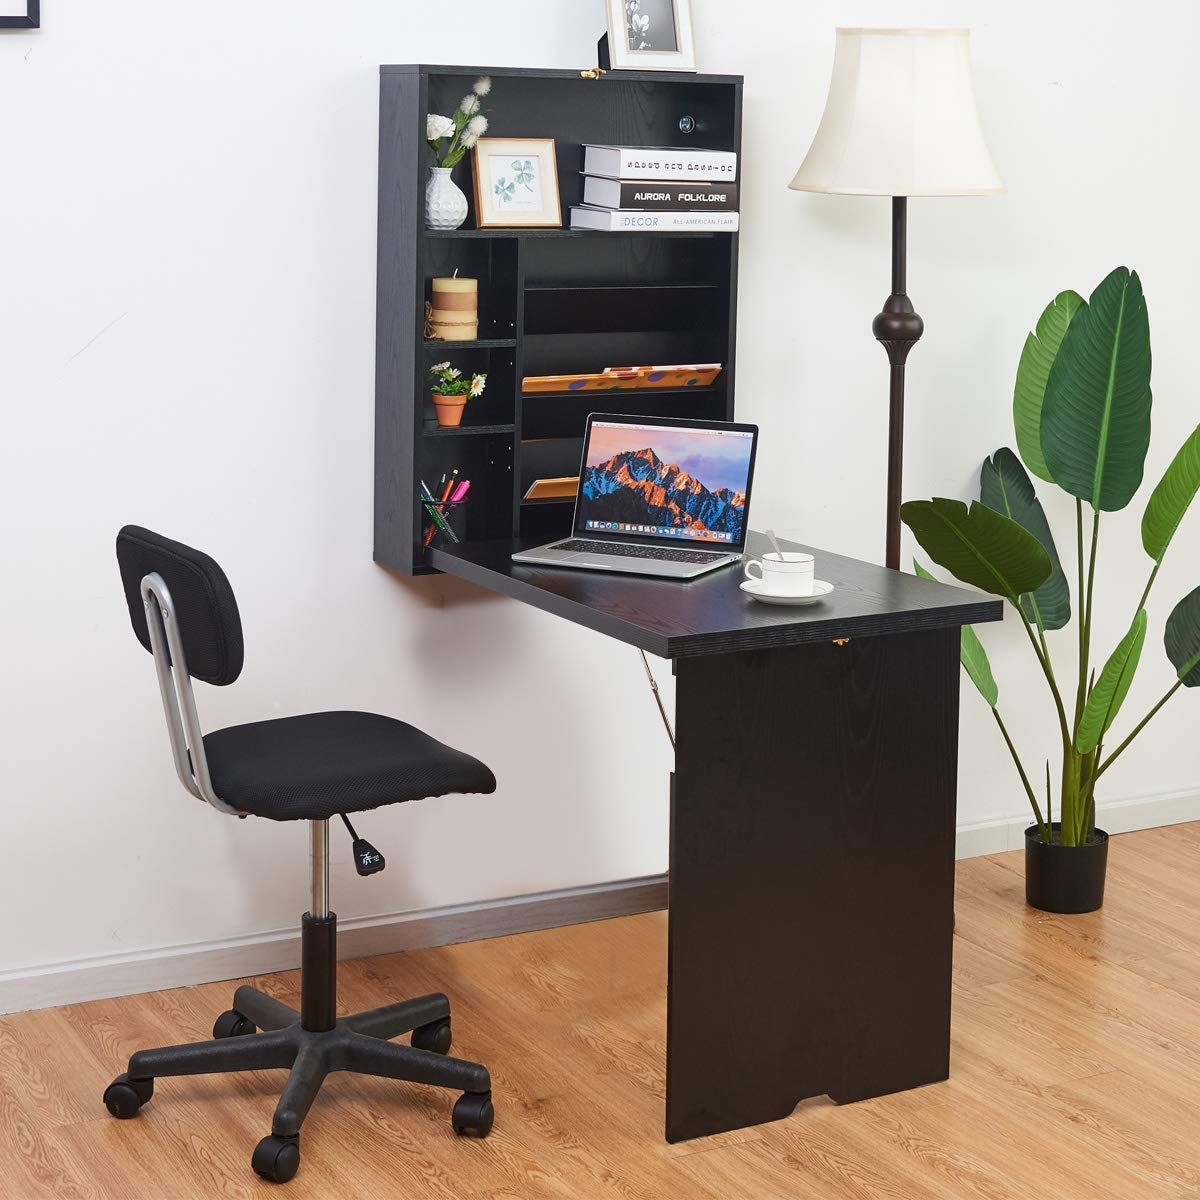 Tangkula Wall Mounted Table, Fold Out Convertible Desk, Multi-Functional Wall Mounted Laptop Desk, Writing Desk Home Office Desk with Large Storage Area